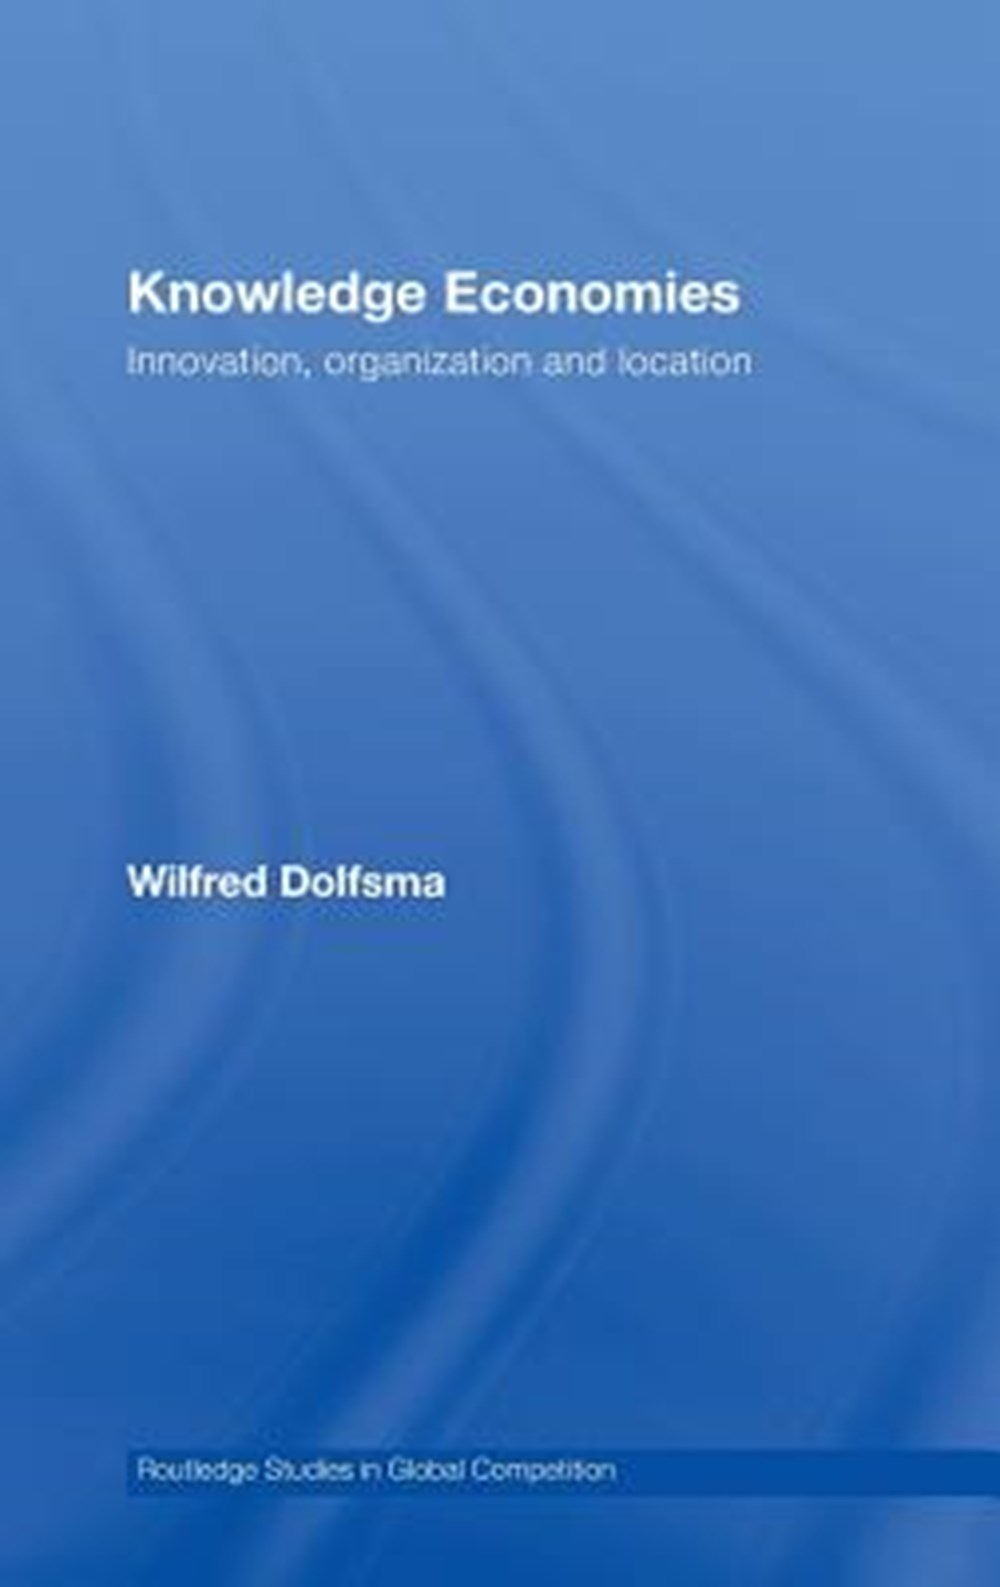 Knowledge Economies Organization, location and innovation